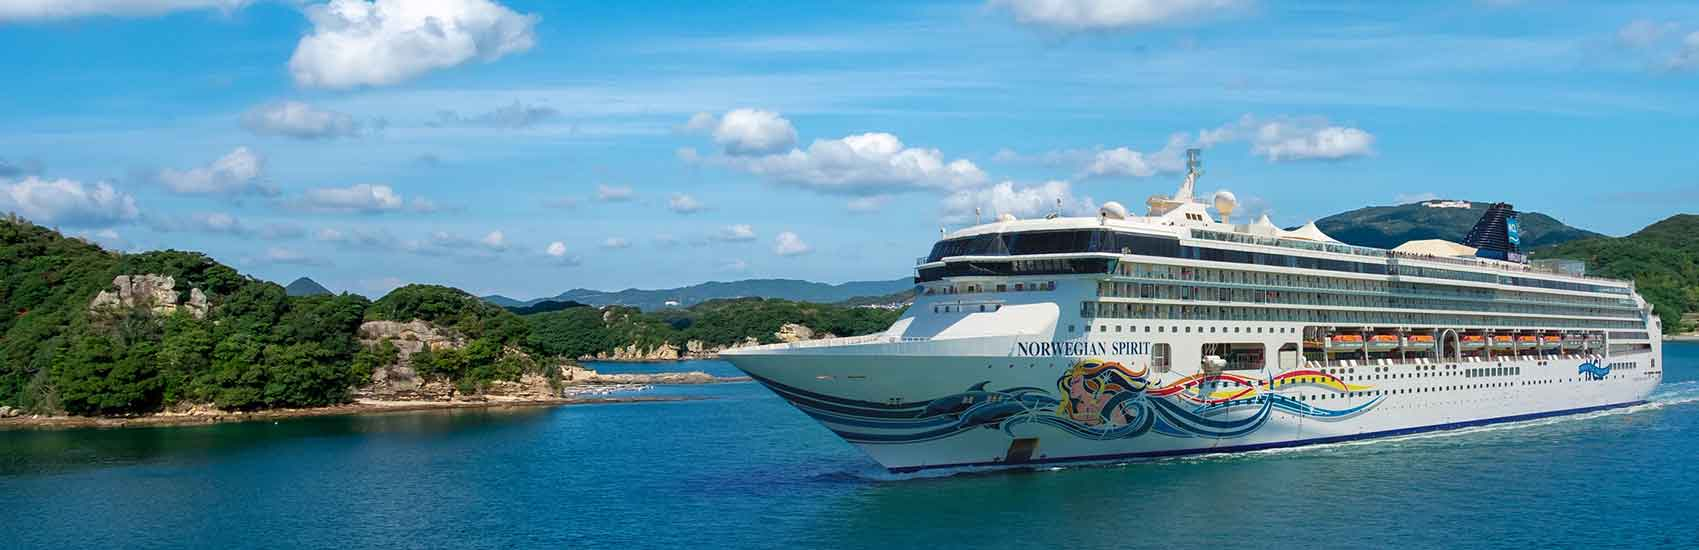 Discover Japan with Norwegian Cruise Line 3